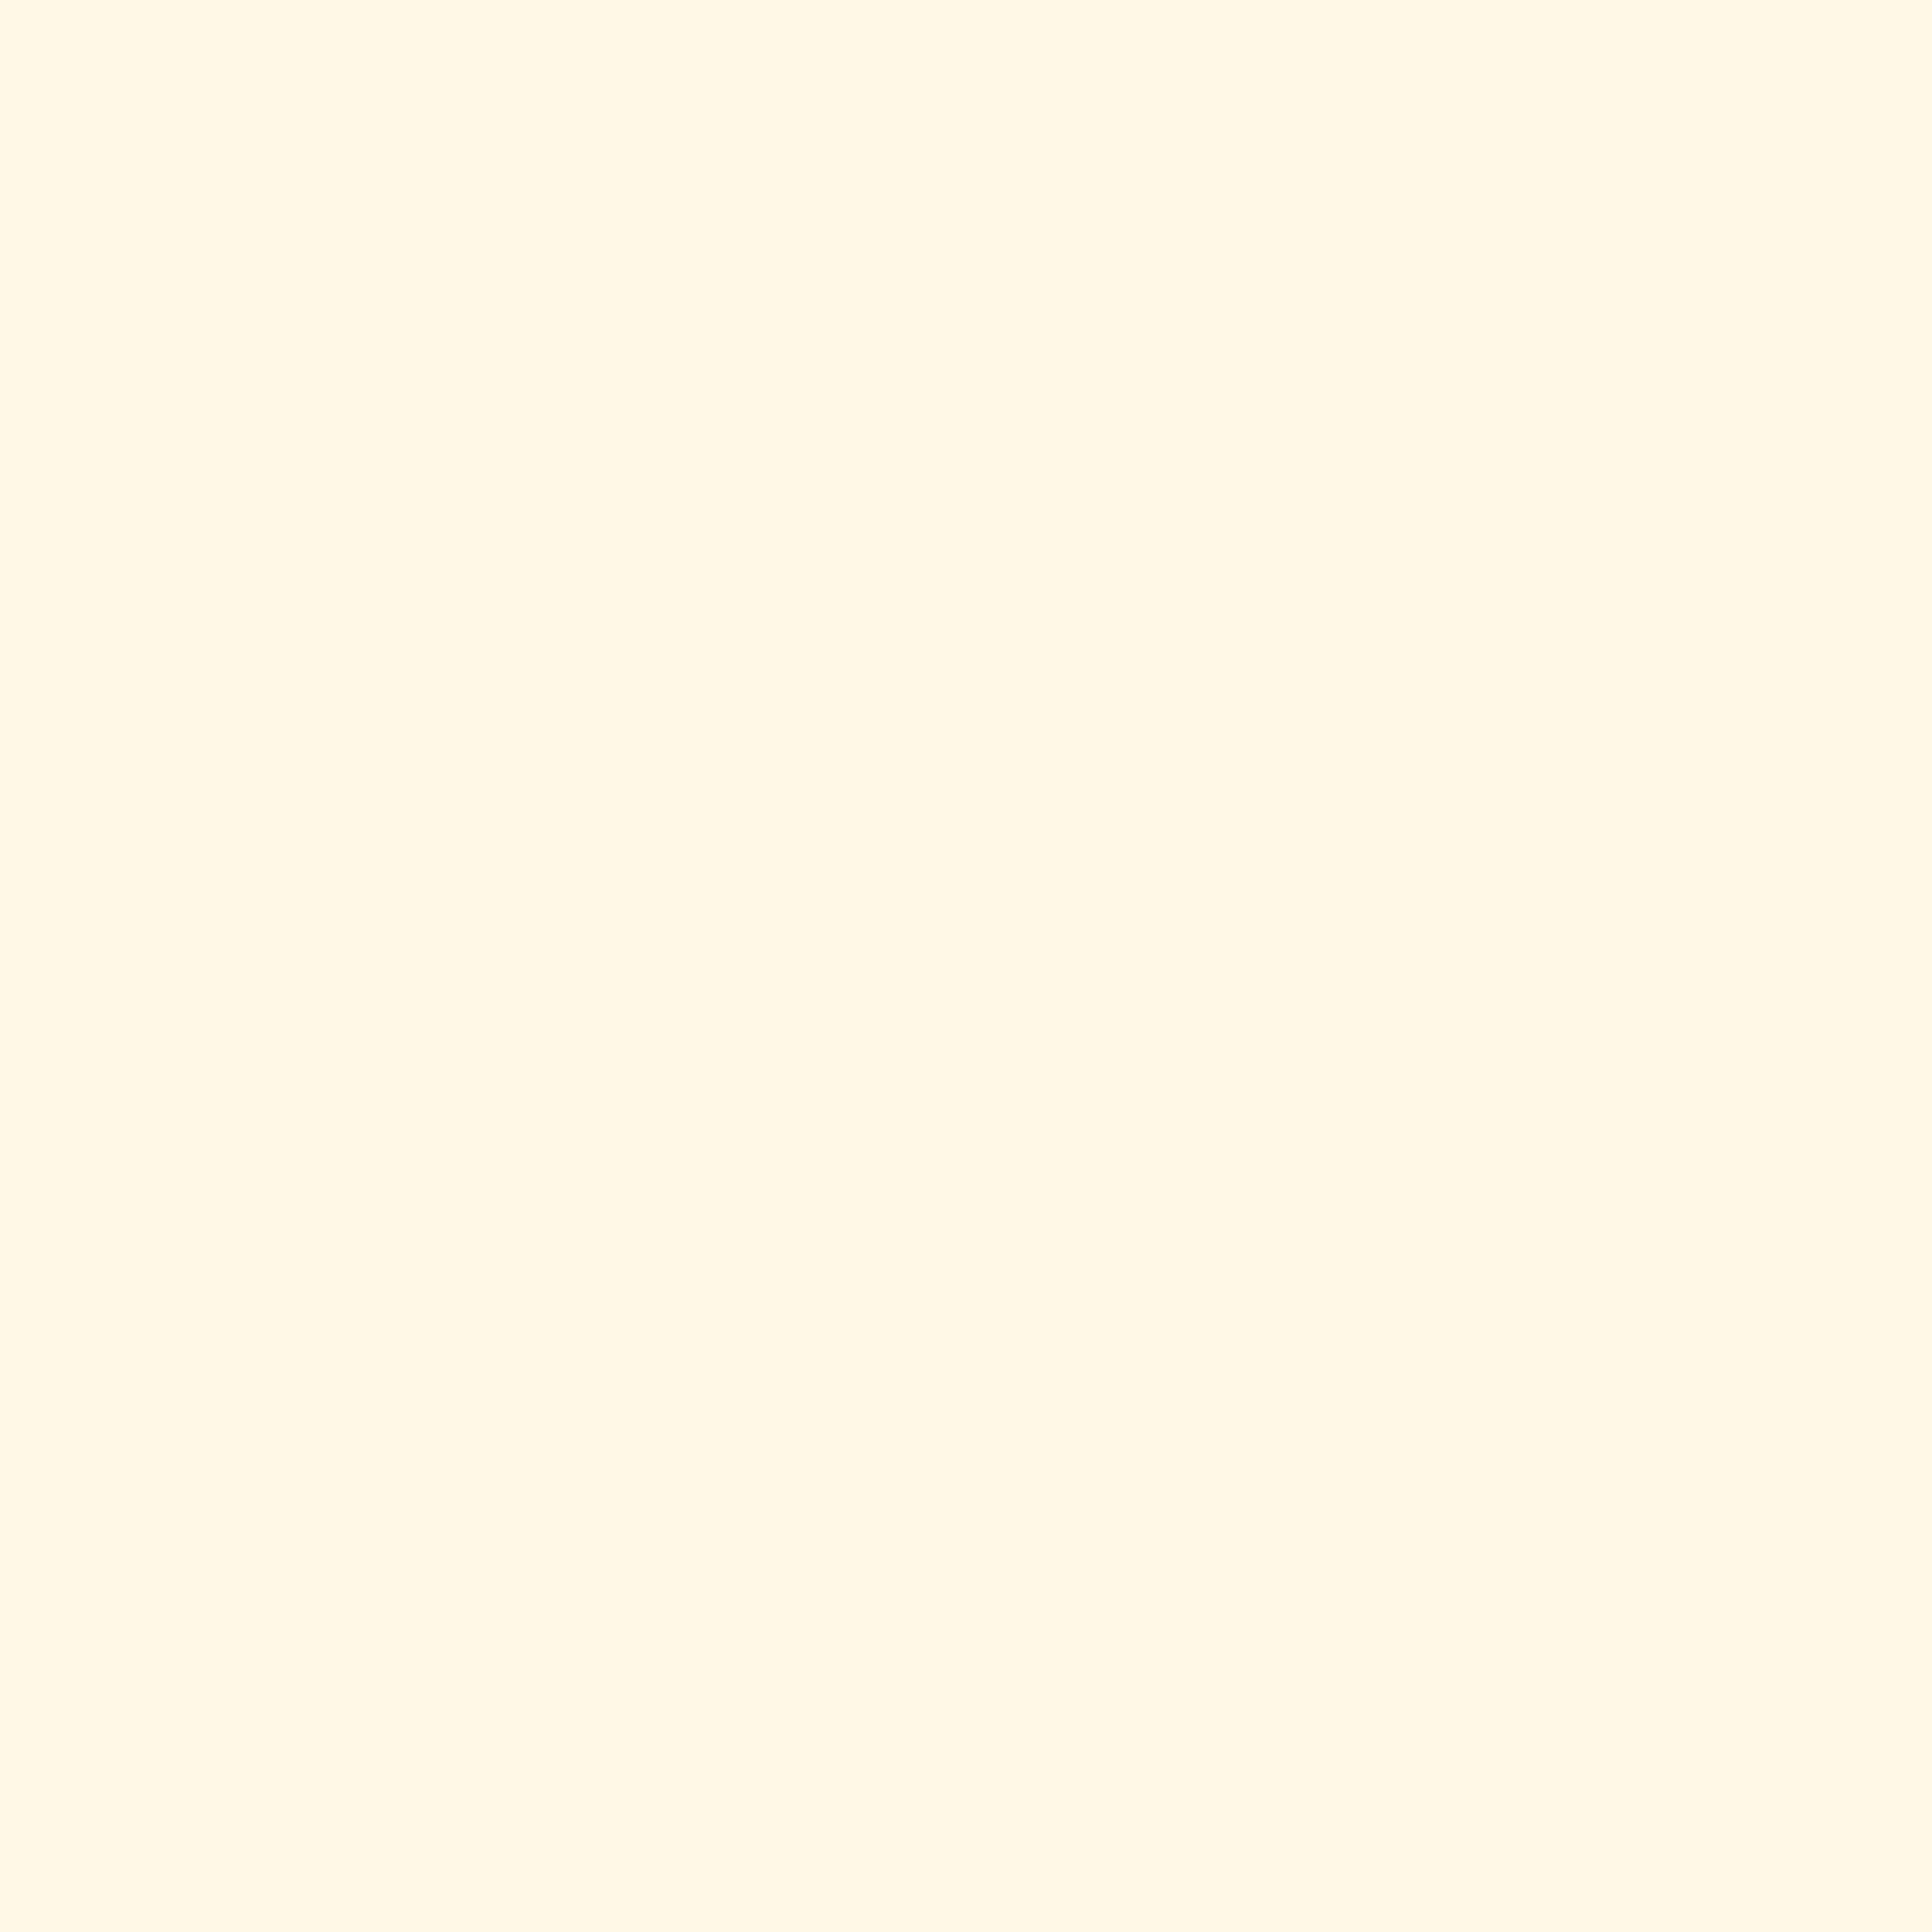 2048x2048 Cosmic Latte Solid Color Background